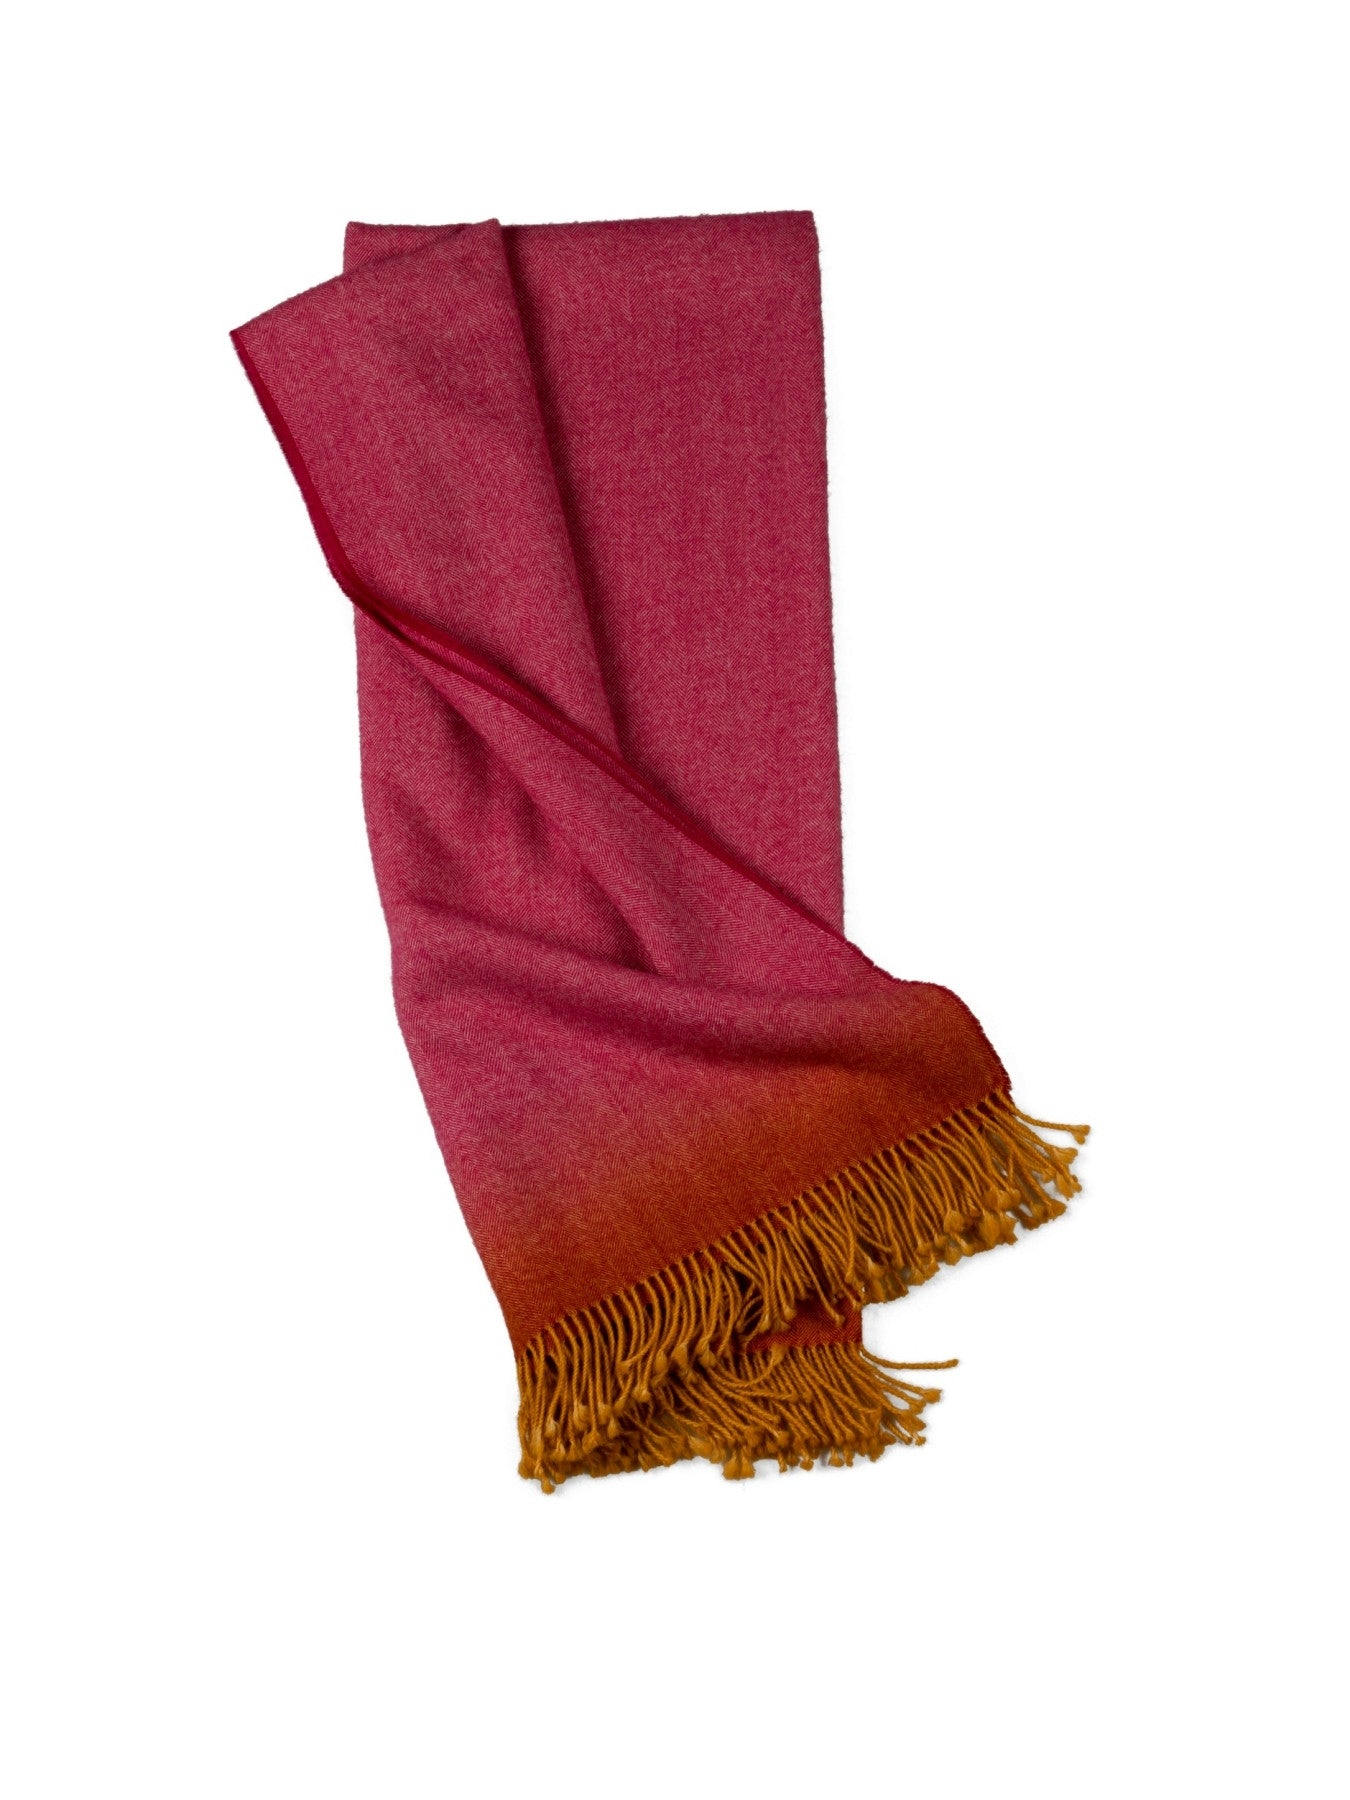 Fringe Dyed Baby Alpaca Throw-Pink w/Yellow